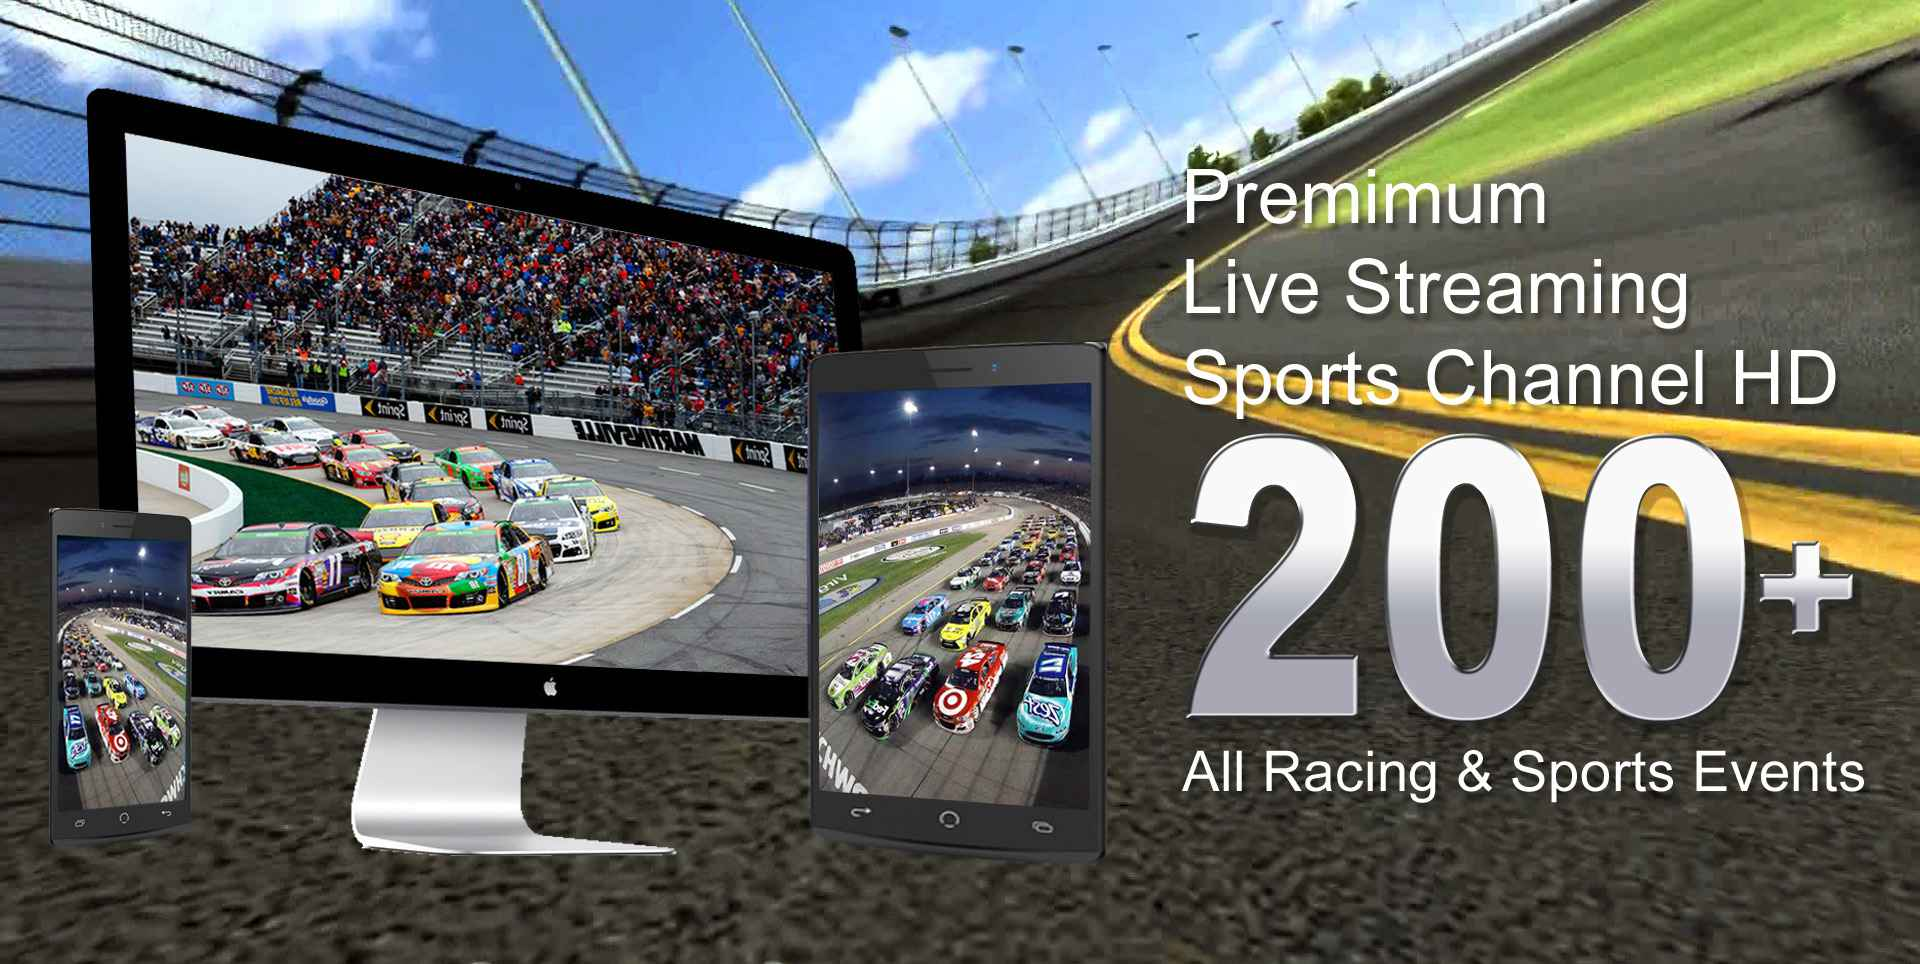 Nascar UNOH 175 Live Android Or Iphone